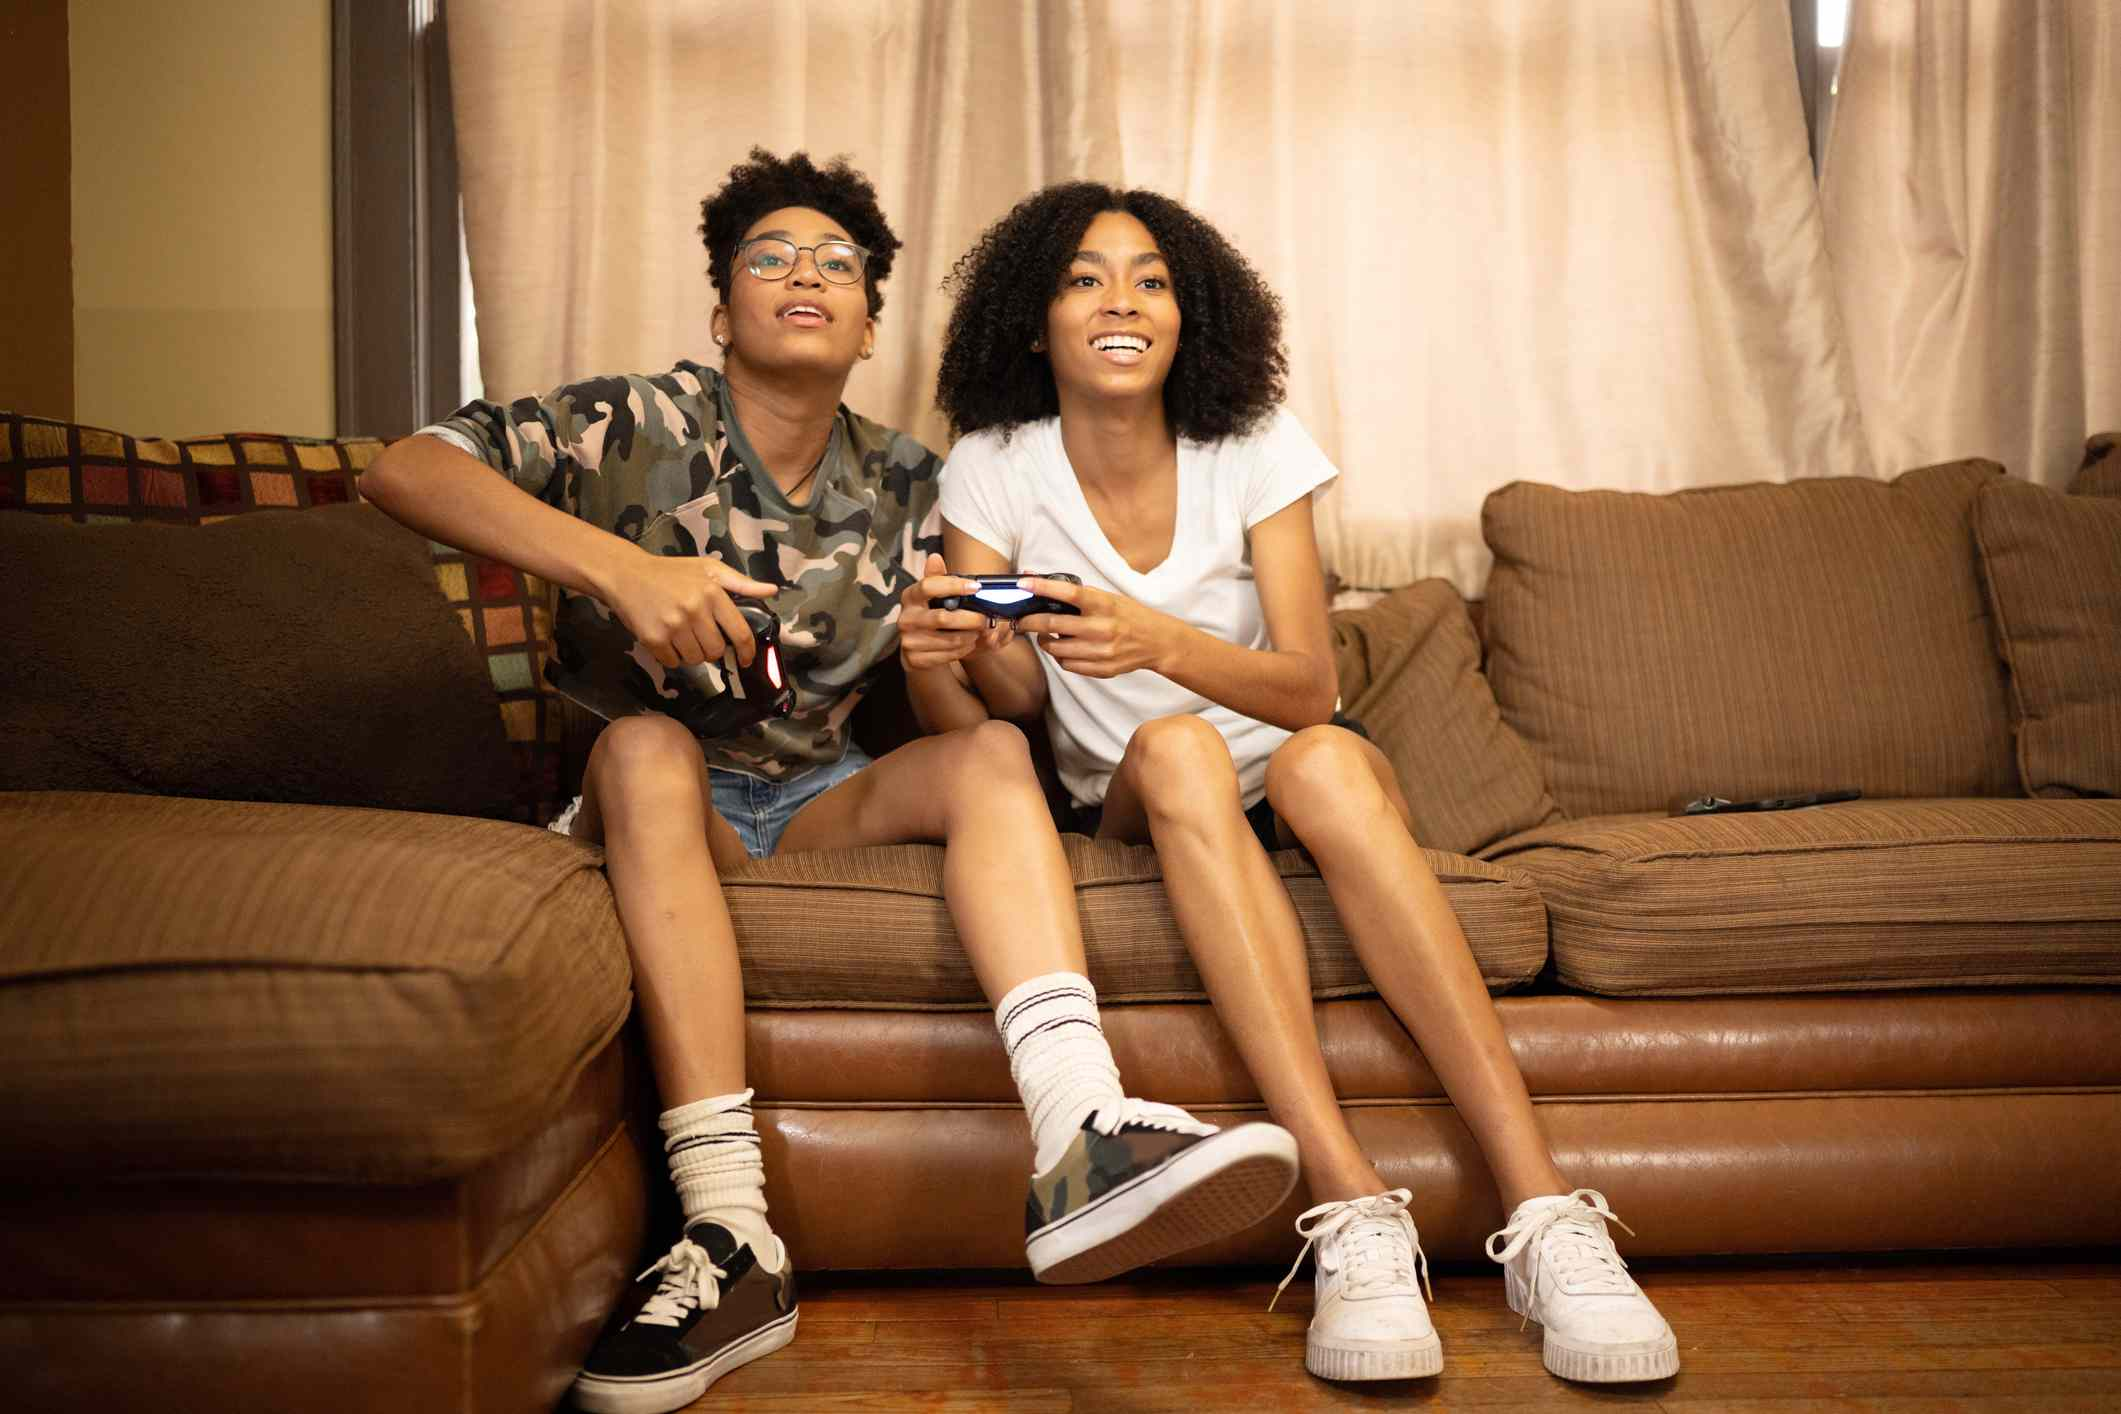 Two teenagers playing video games at home while sitting on a couch.